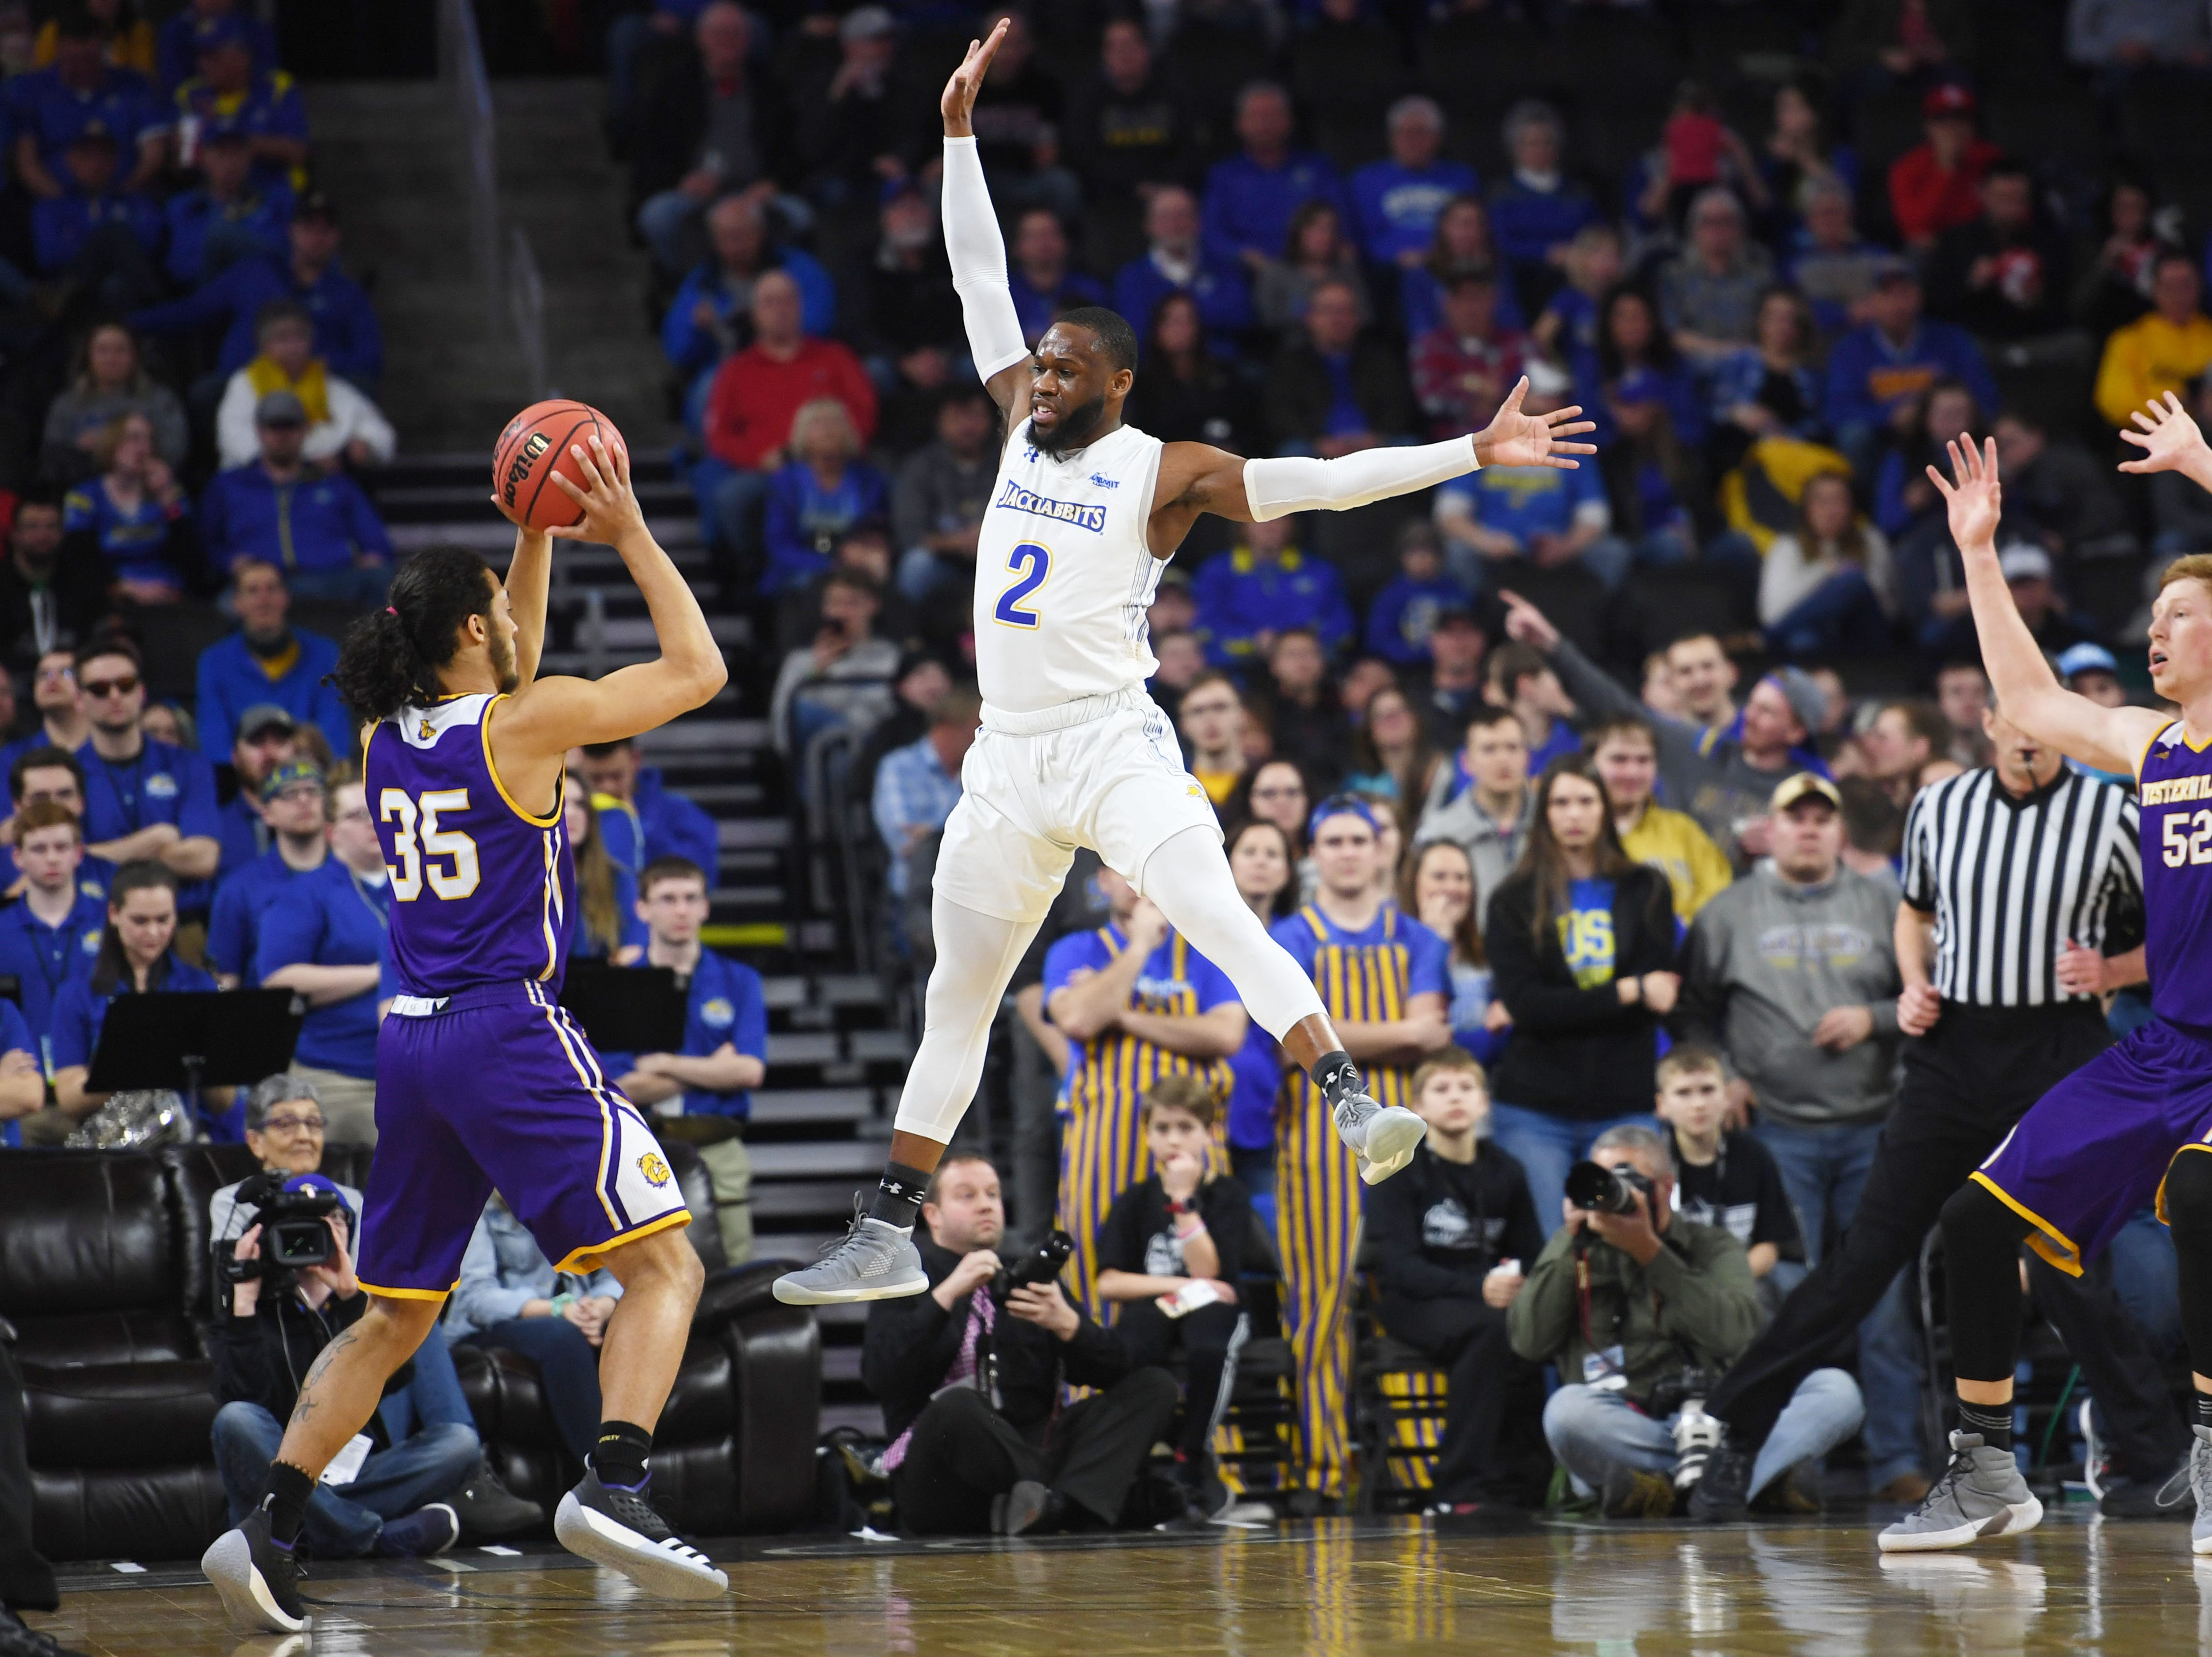 SDSU's Tevin King attempts to block Western Illinois' Isaac Johnson from taking a shot during the game Saturday, March 9, in the Summit League tournament at the Denny Sanford Premier Center in Sioux Falls.